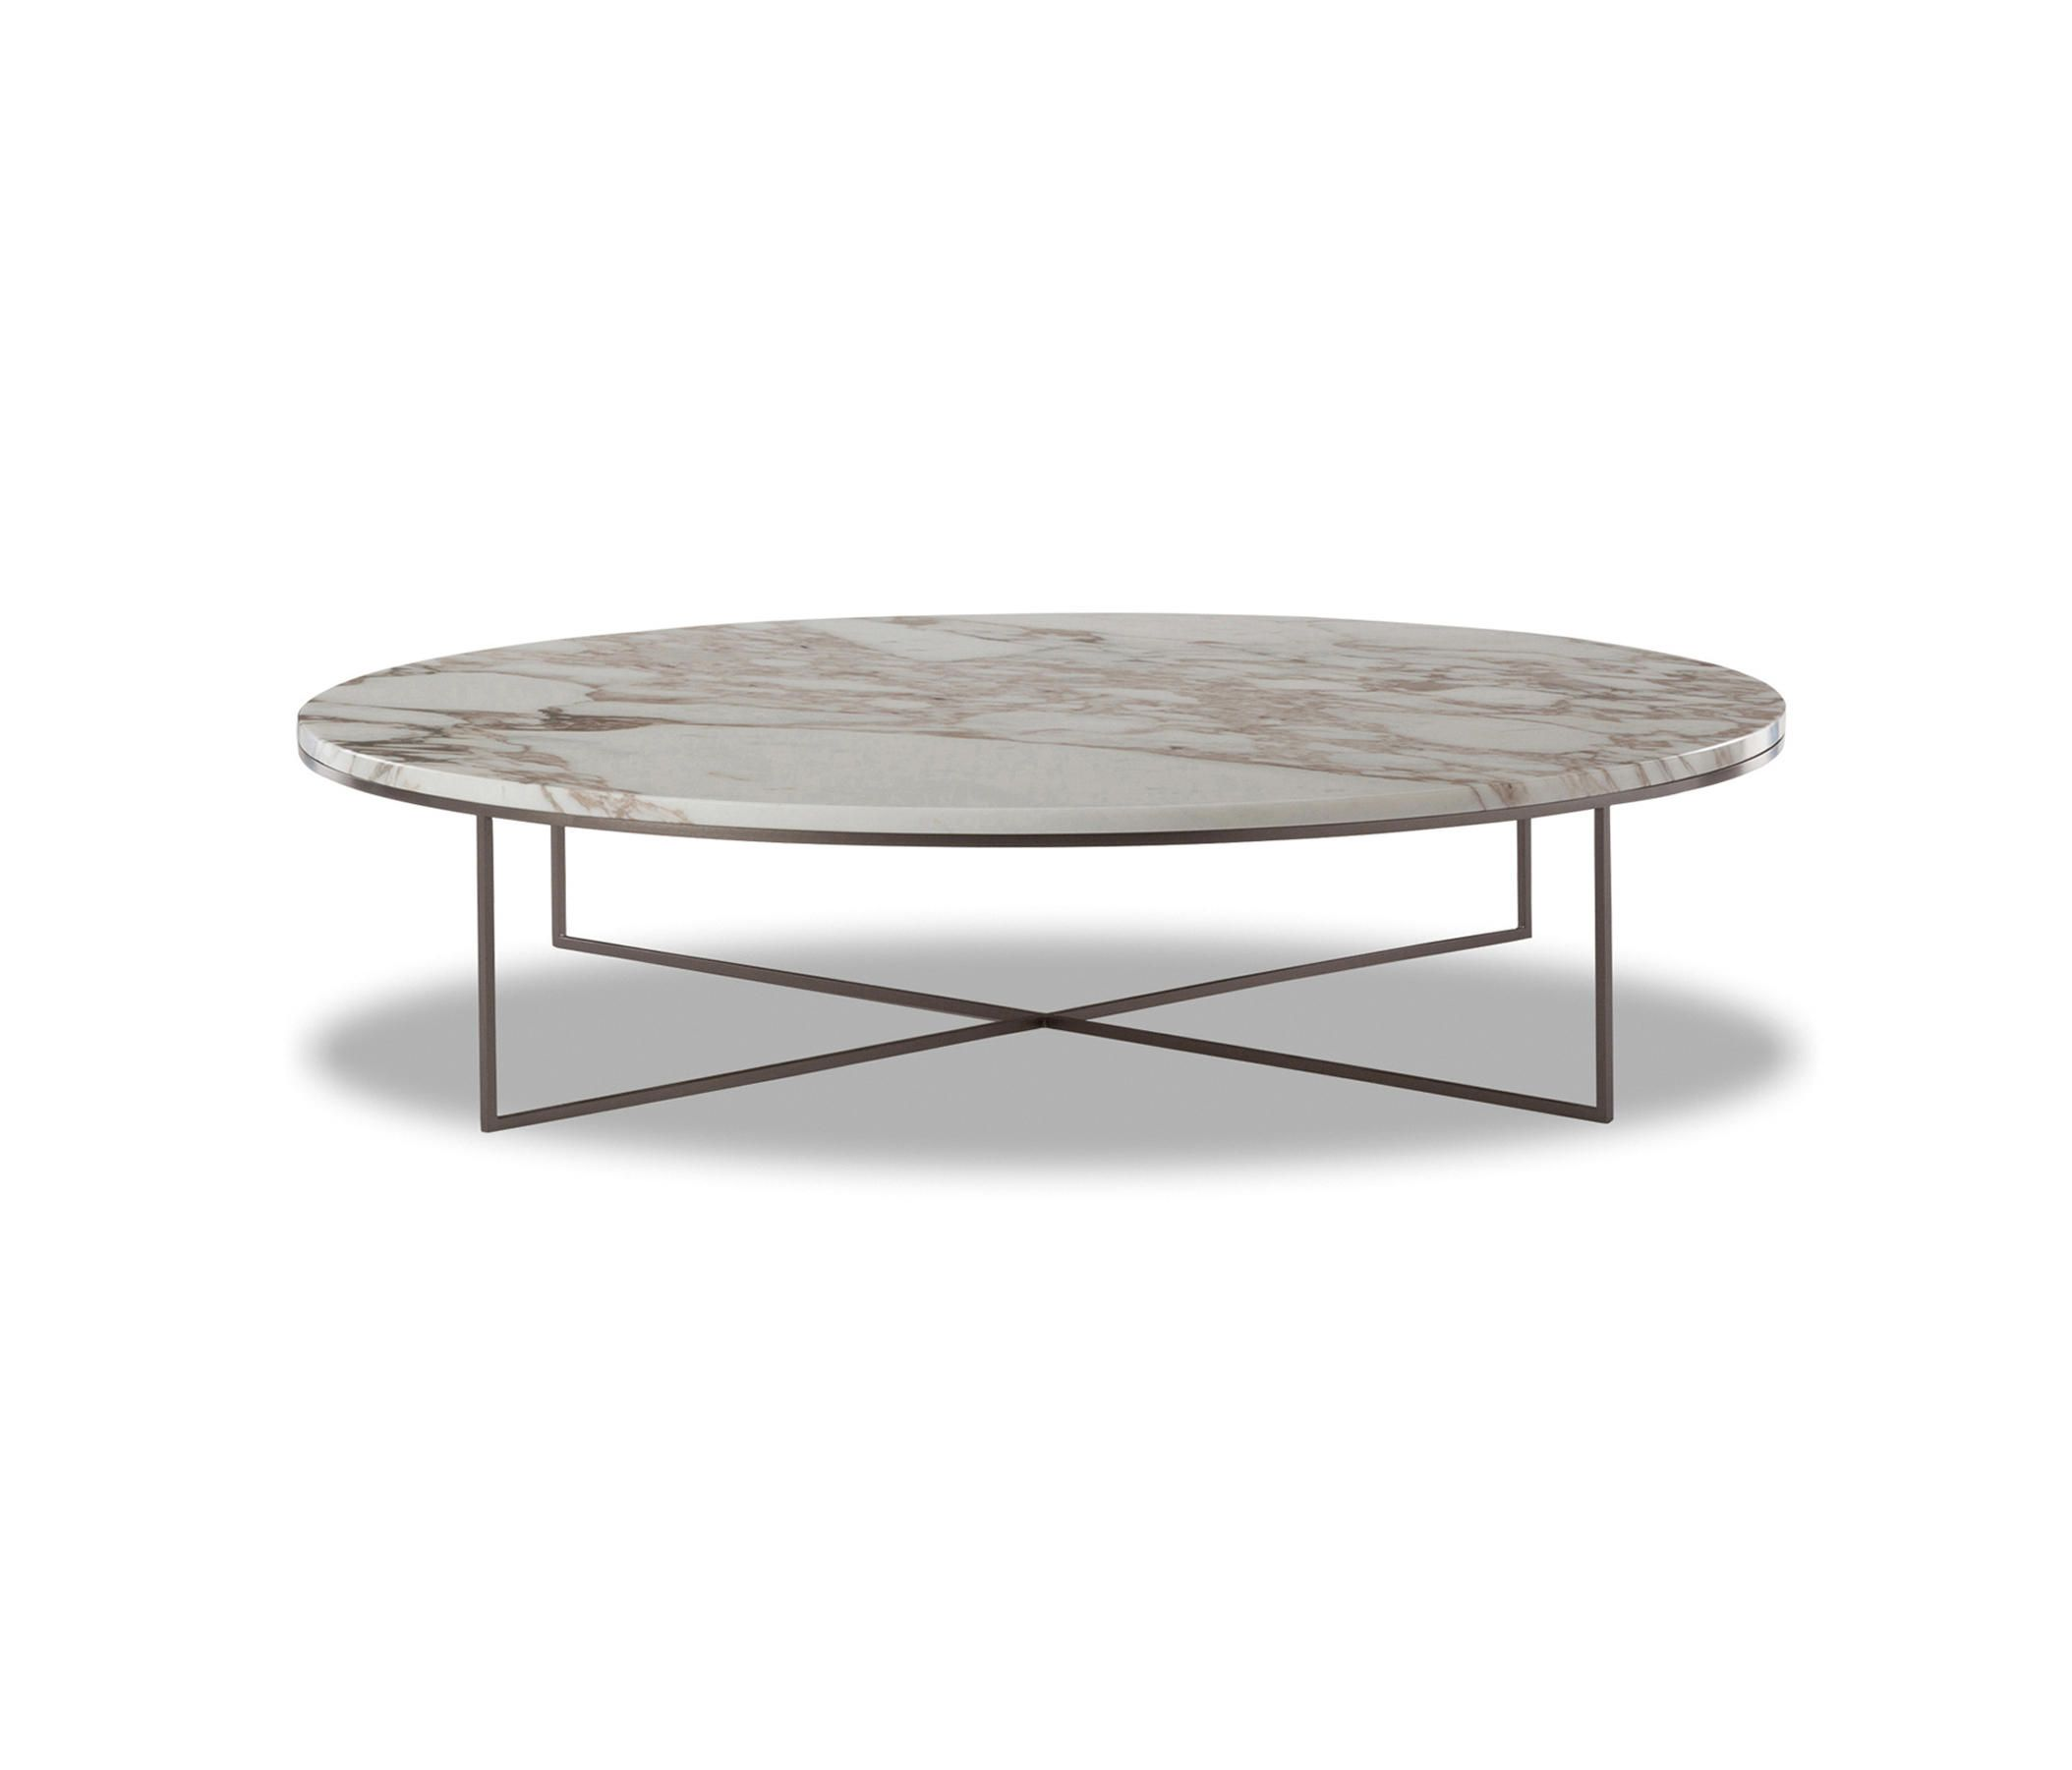 Calder bronze coffee table by minotti lounge tables seattle calder bronze coffee table by minotti lounge tables geotapseo Image collections